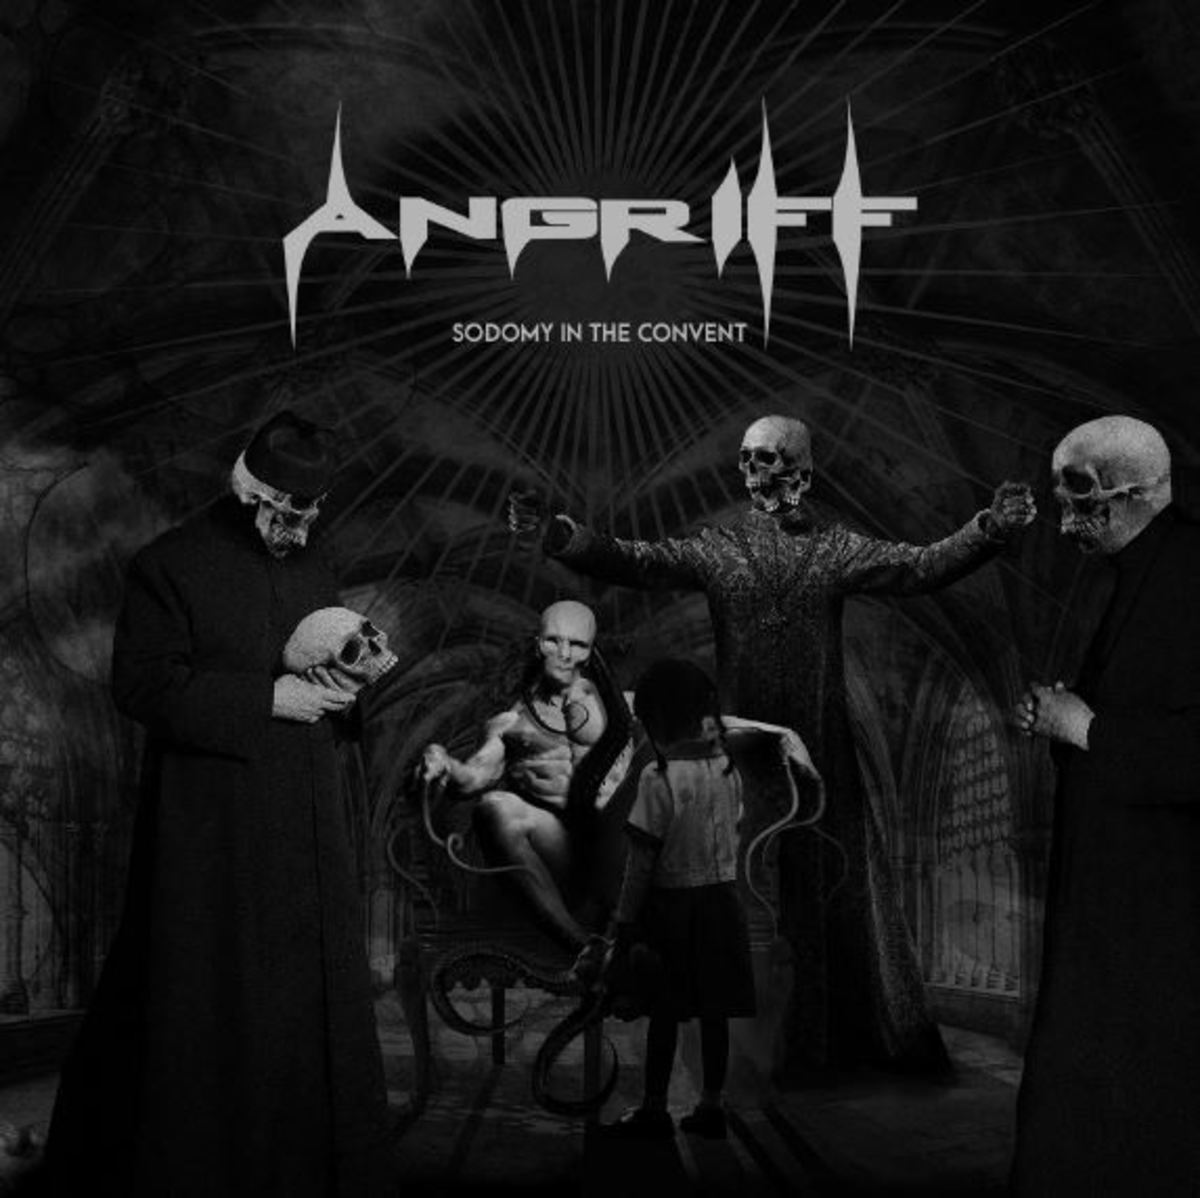 review-of-the-album-sodomy-in-the-convent-by-portuguese-thrash-metal-band-angriff